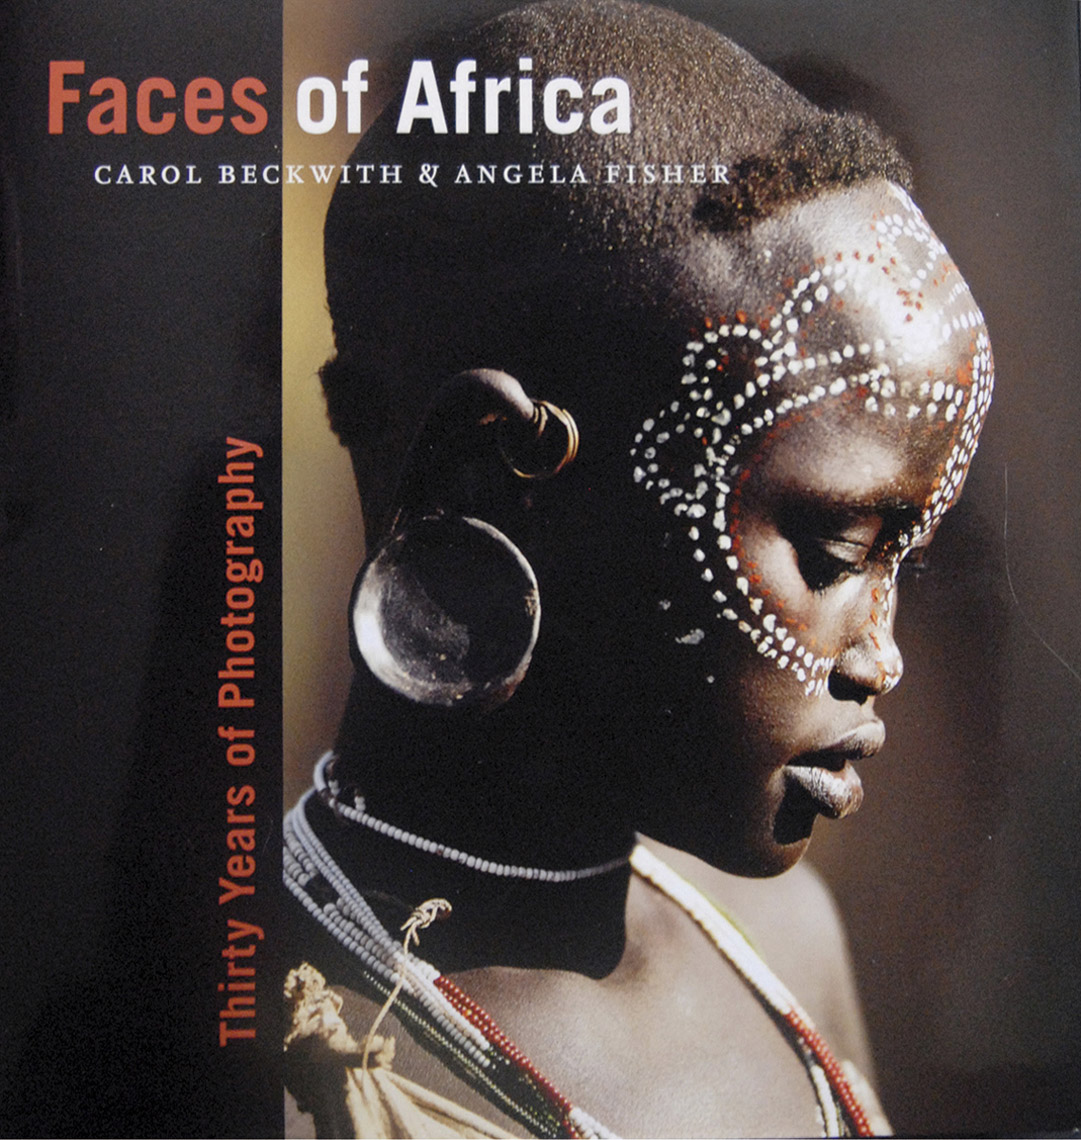 Faces of Africa - Carol Beckwith & Angela Fisher, 2004